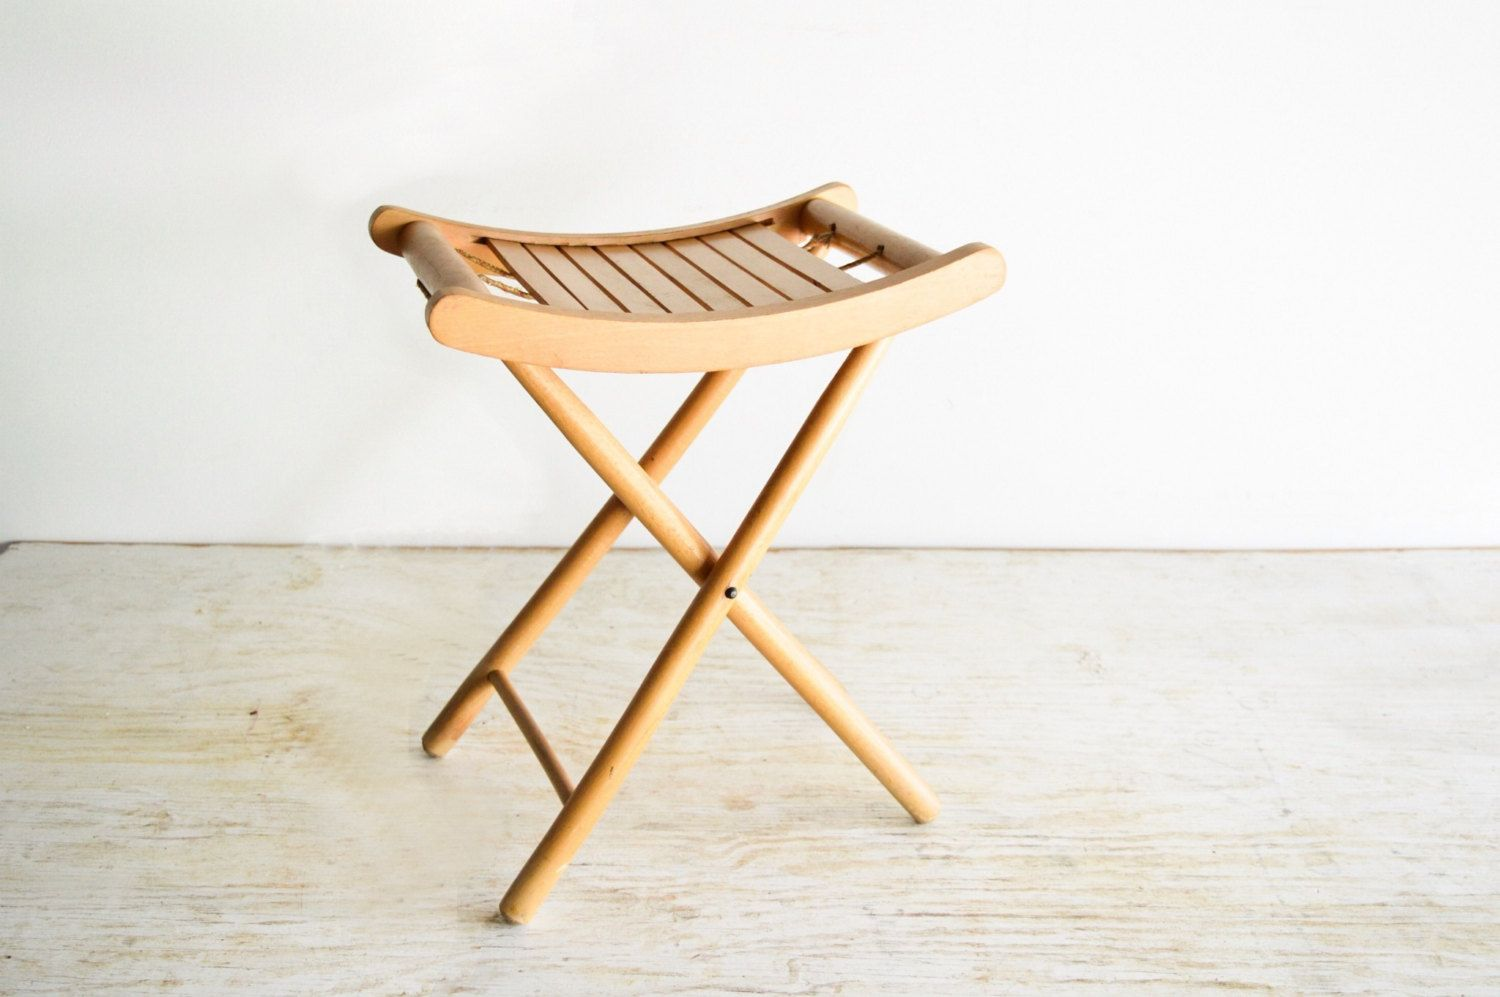 Strange Wood Stool Camp Stool Folding Stool Camping Chair Small Onthecornerstone Fun Painted Chair Ideas Images Onthecornerstoneorg